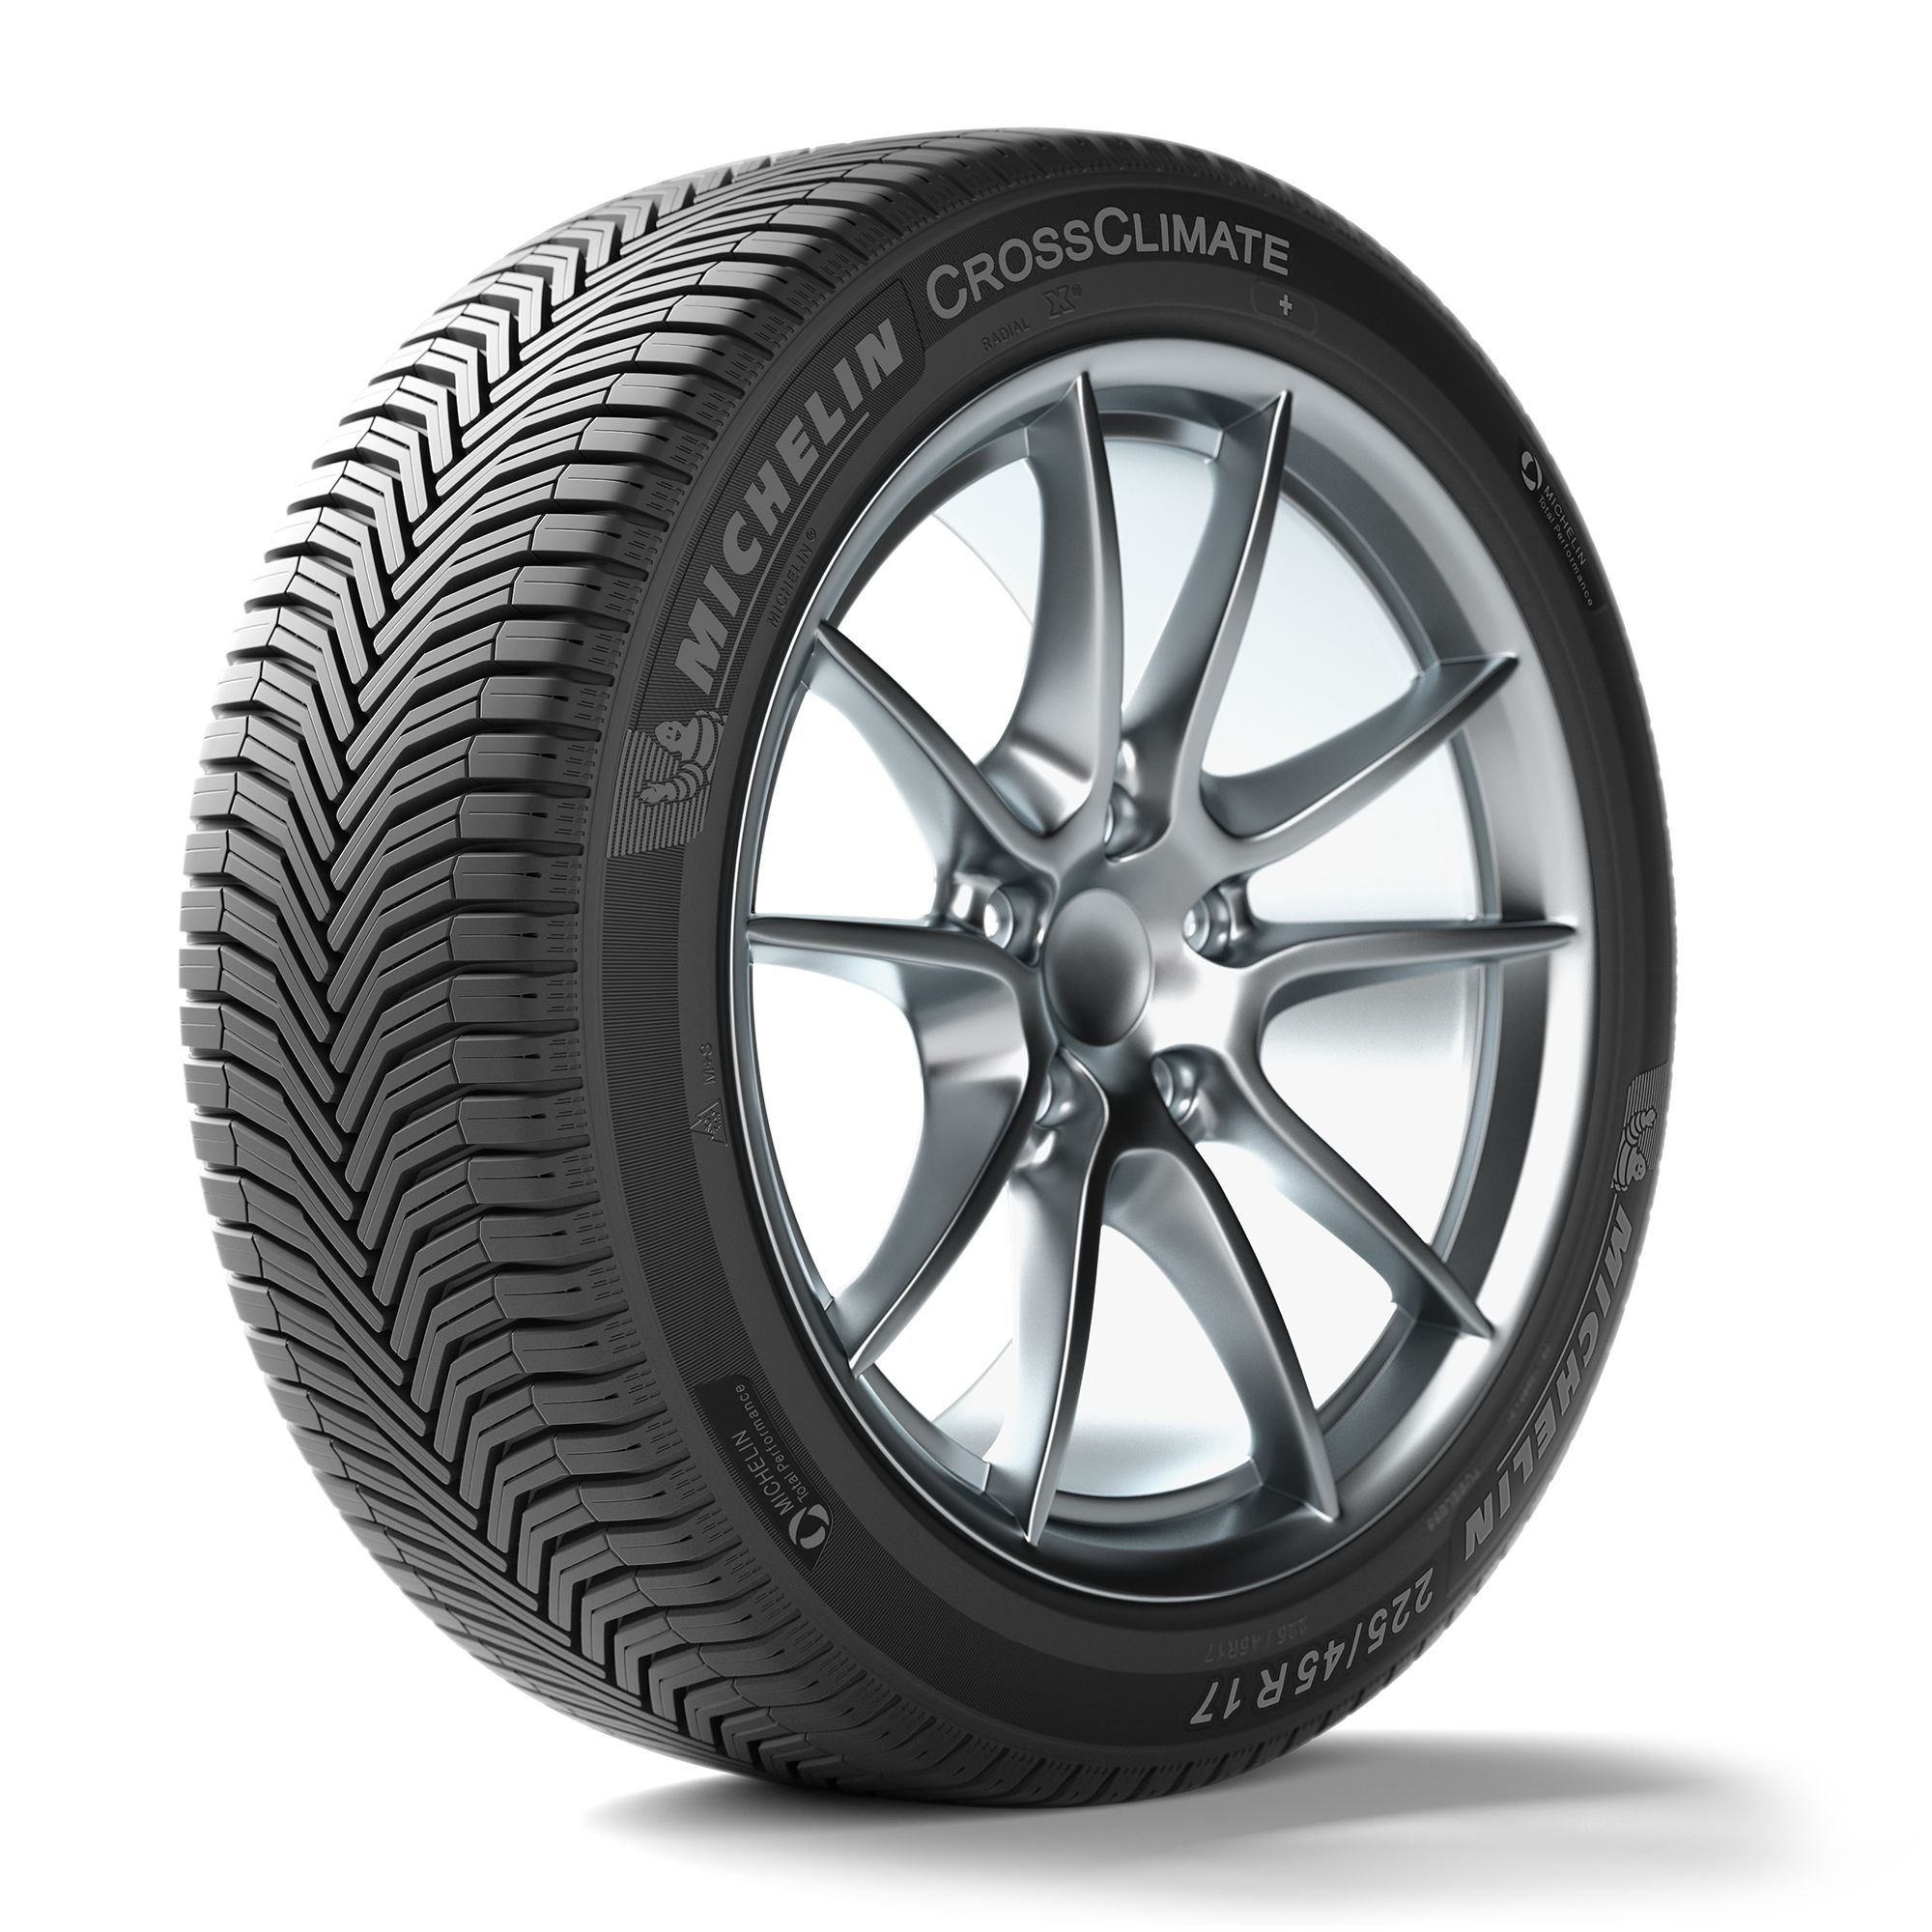 MICHELIN CROSSCLIMATE+ 245/45R18 100Y